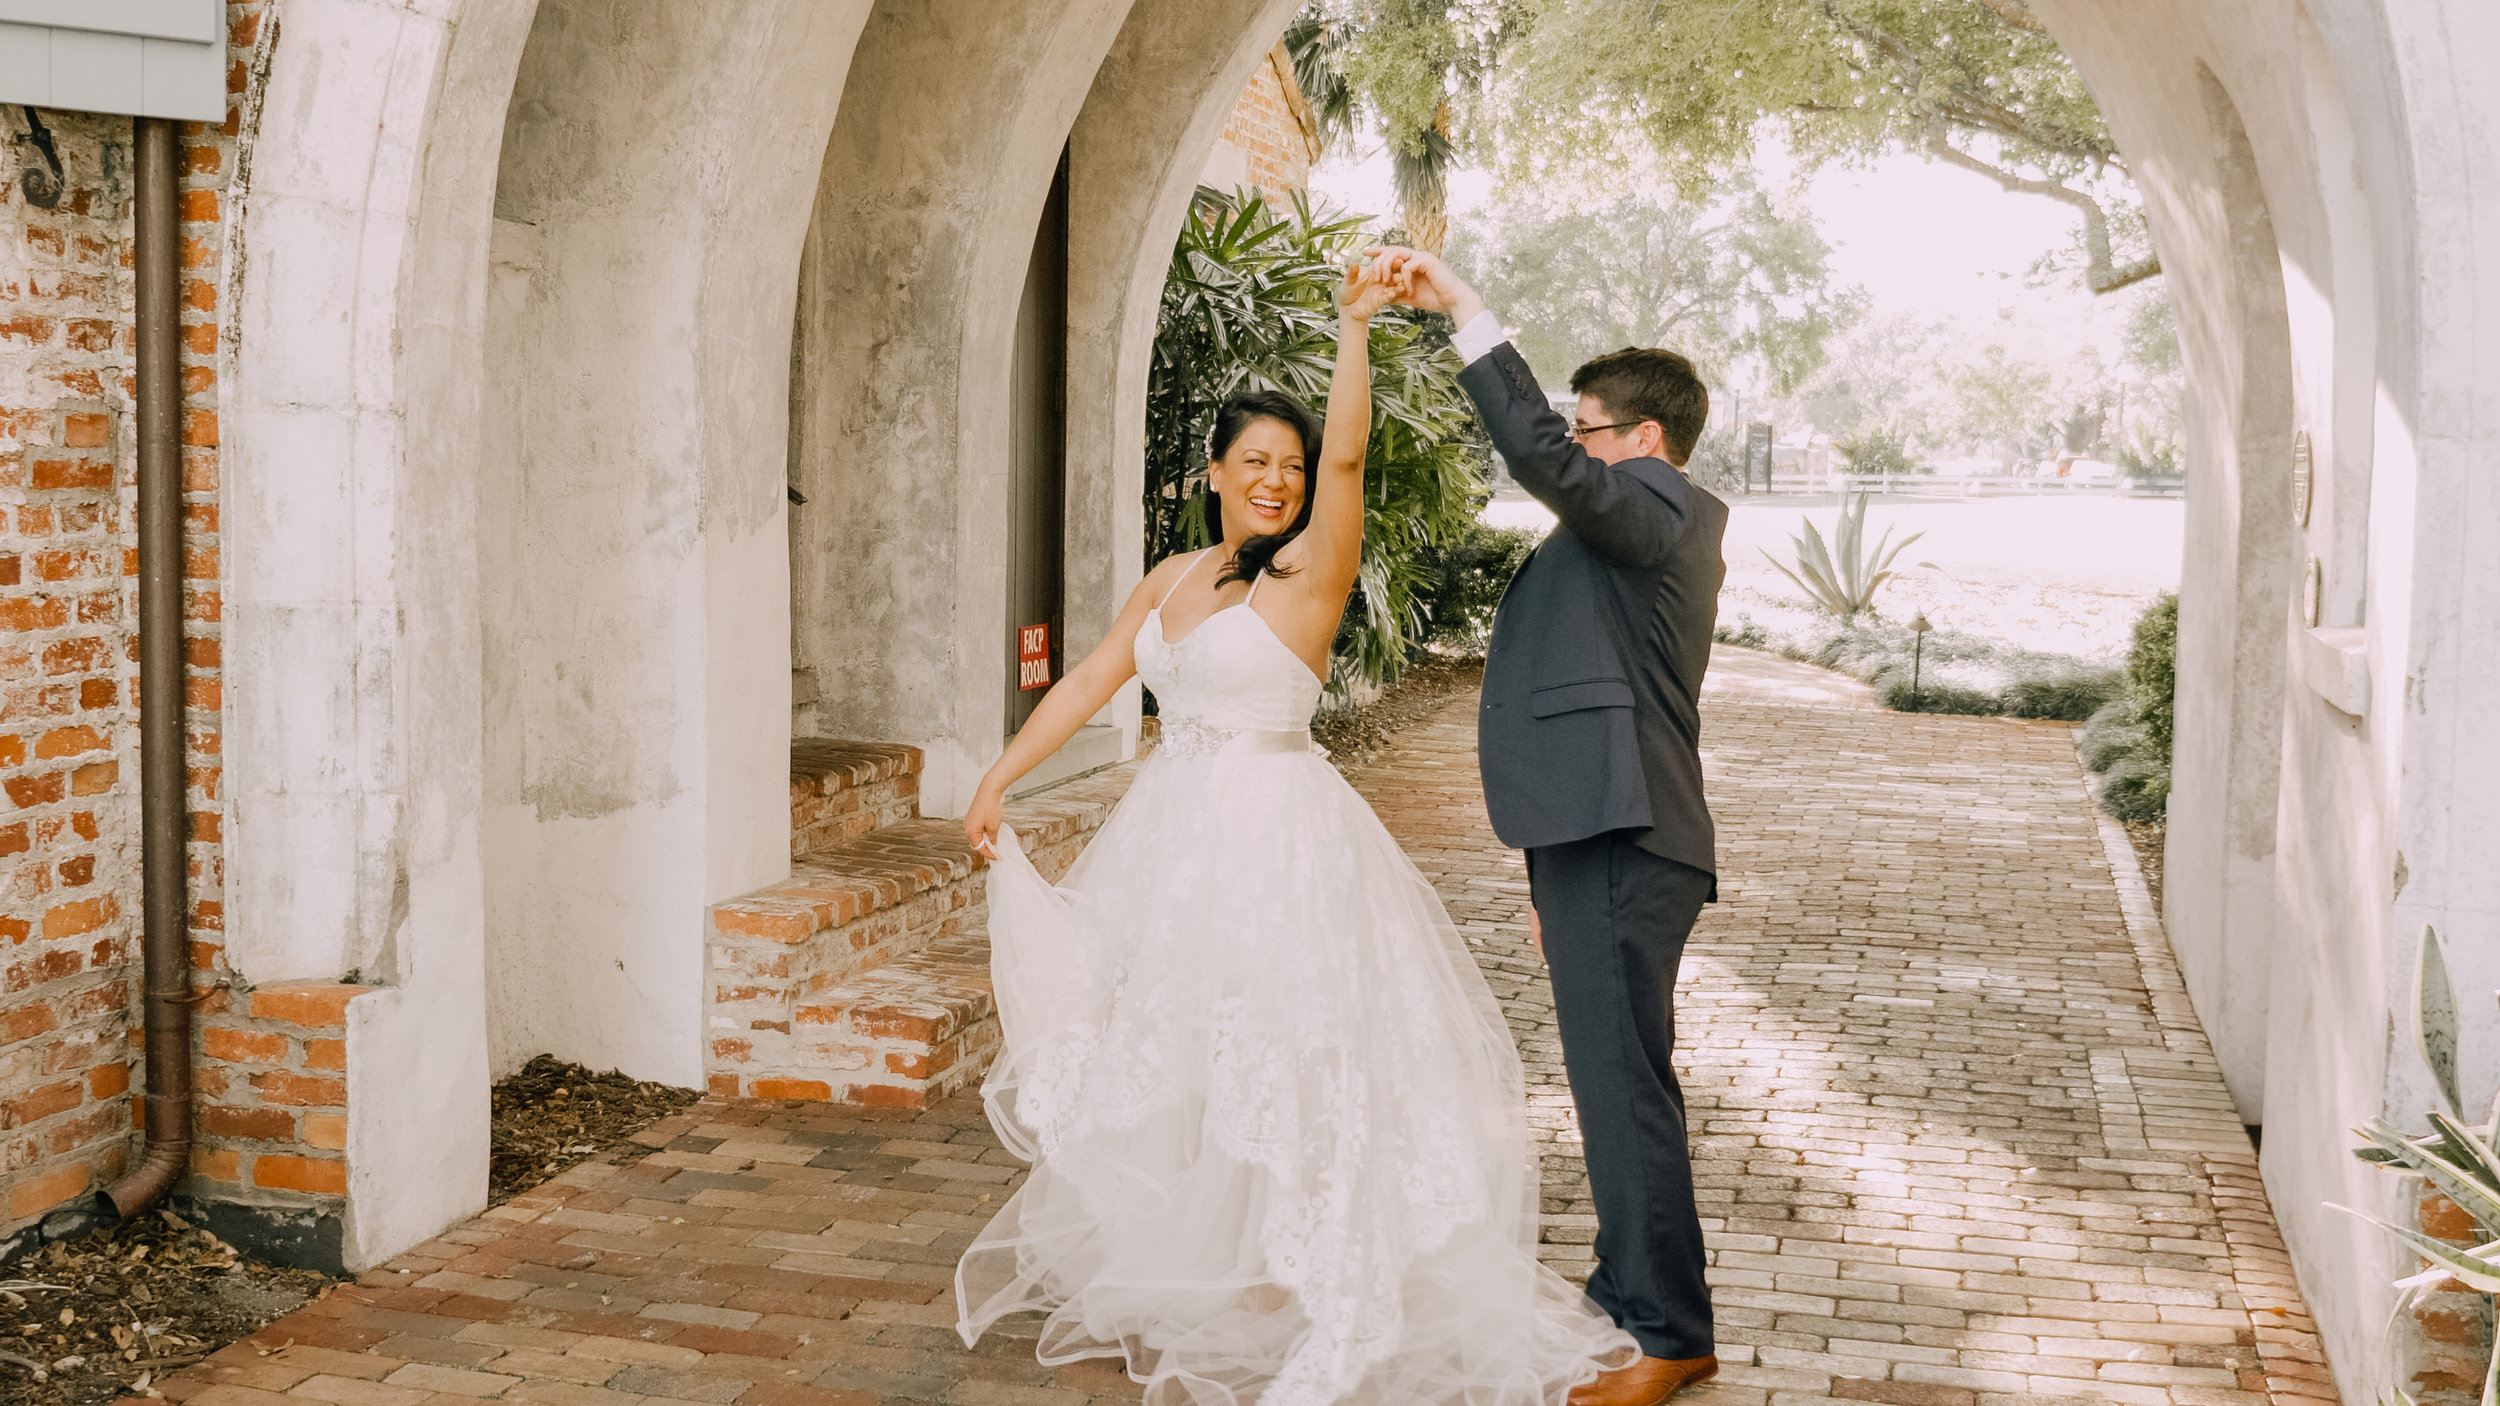 LEE + MABEL - The wedding of Lee and Mabel, captured at Casa Feliz in Winter Park, FL.